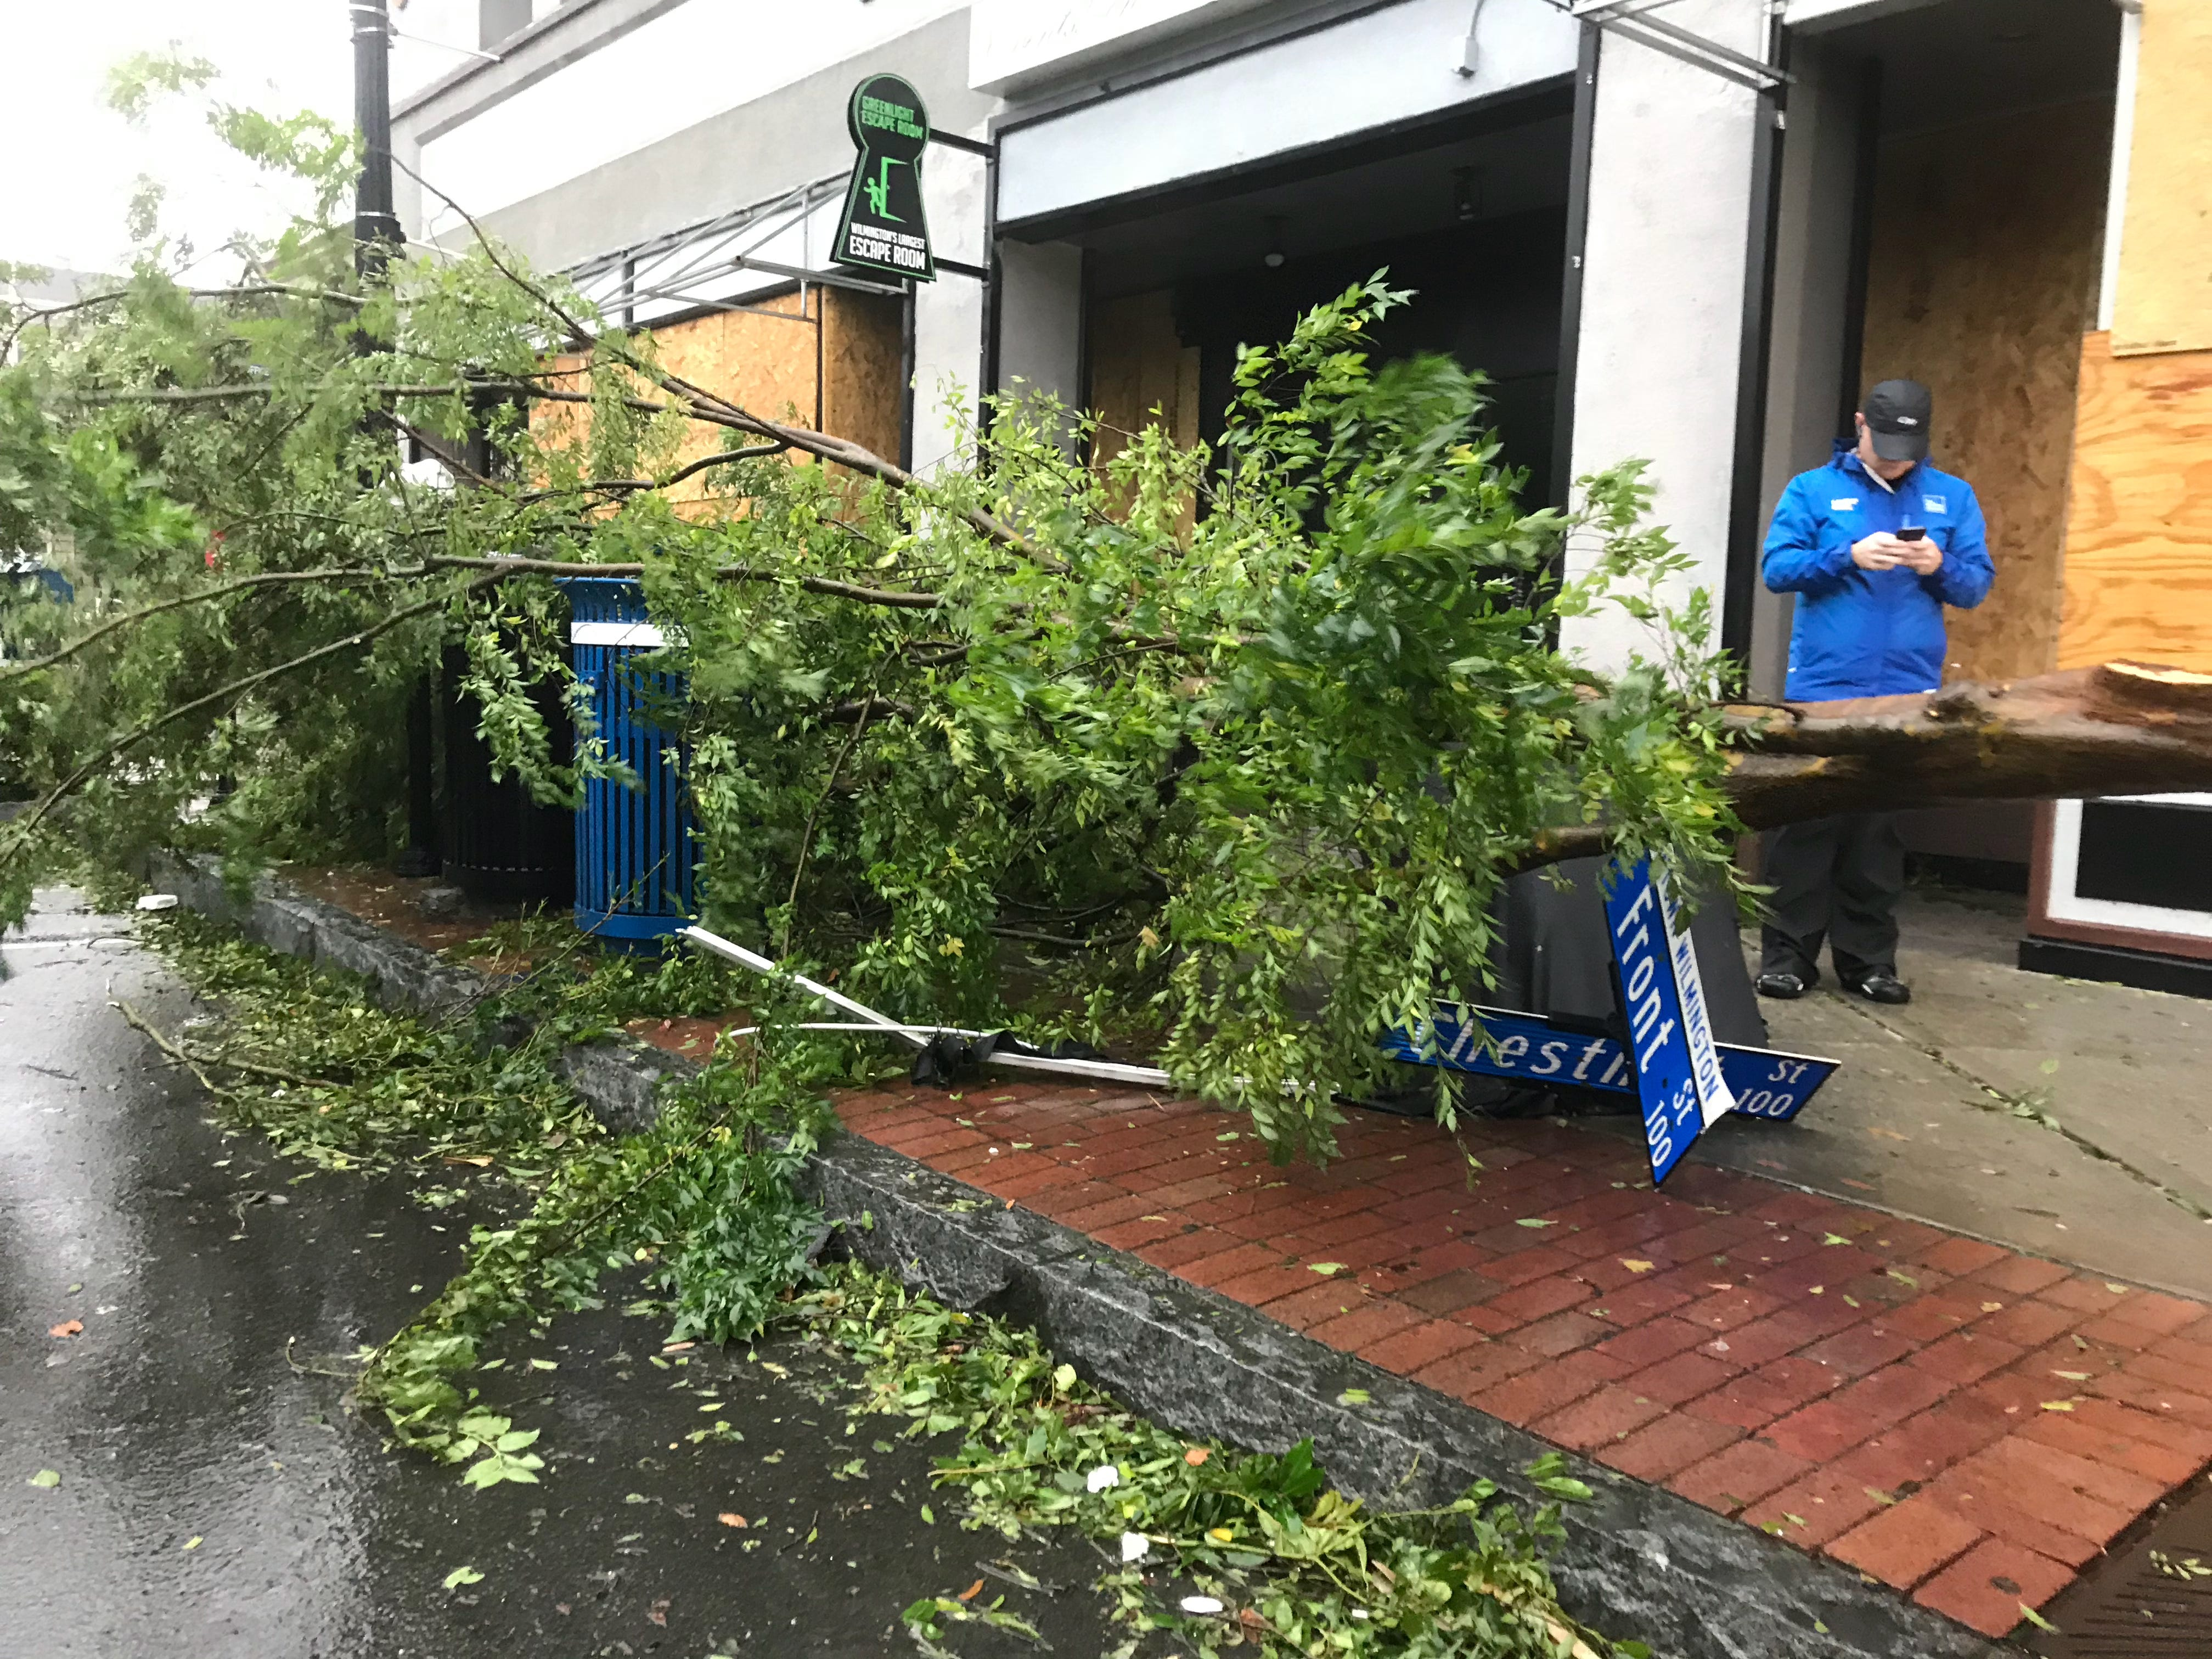 Damage from Hurricane Florence in Wilmington, North Carolina, on Friday, Sept. 14, 2018, after the storm made landfall close to the city earlier in the morning.